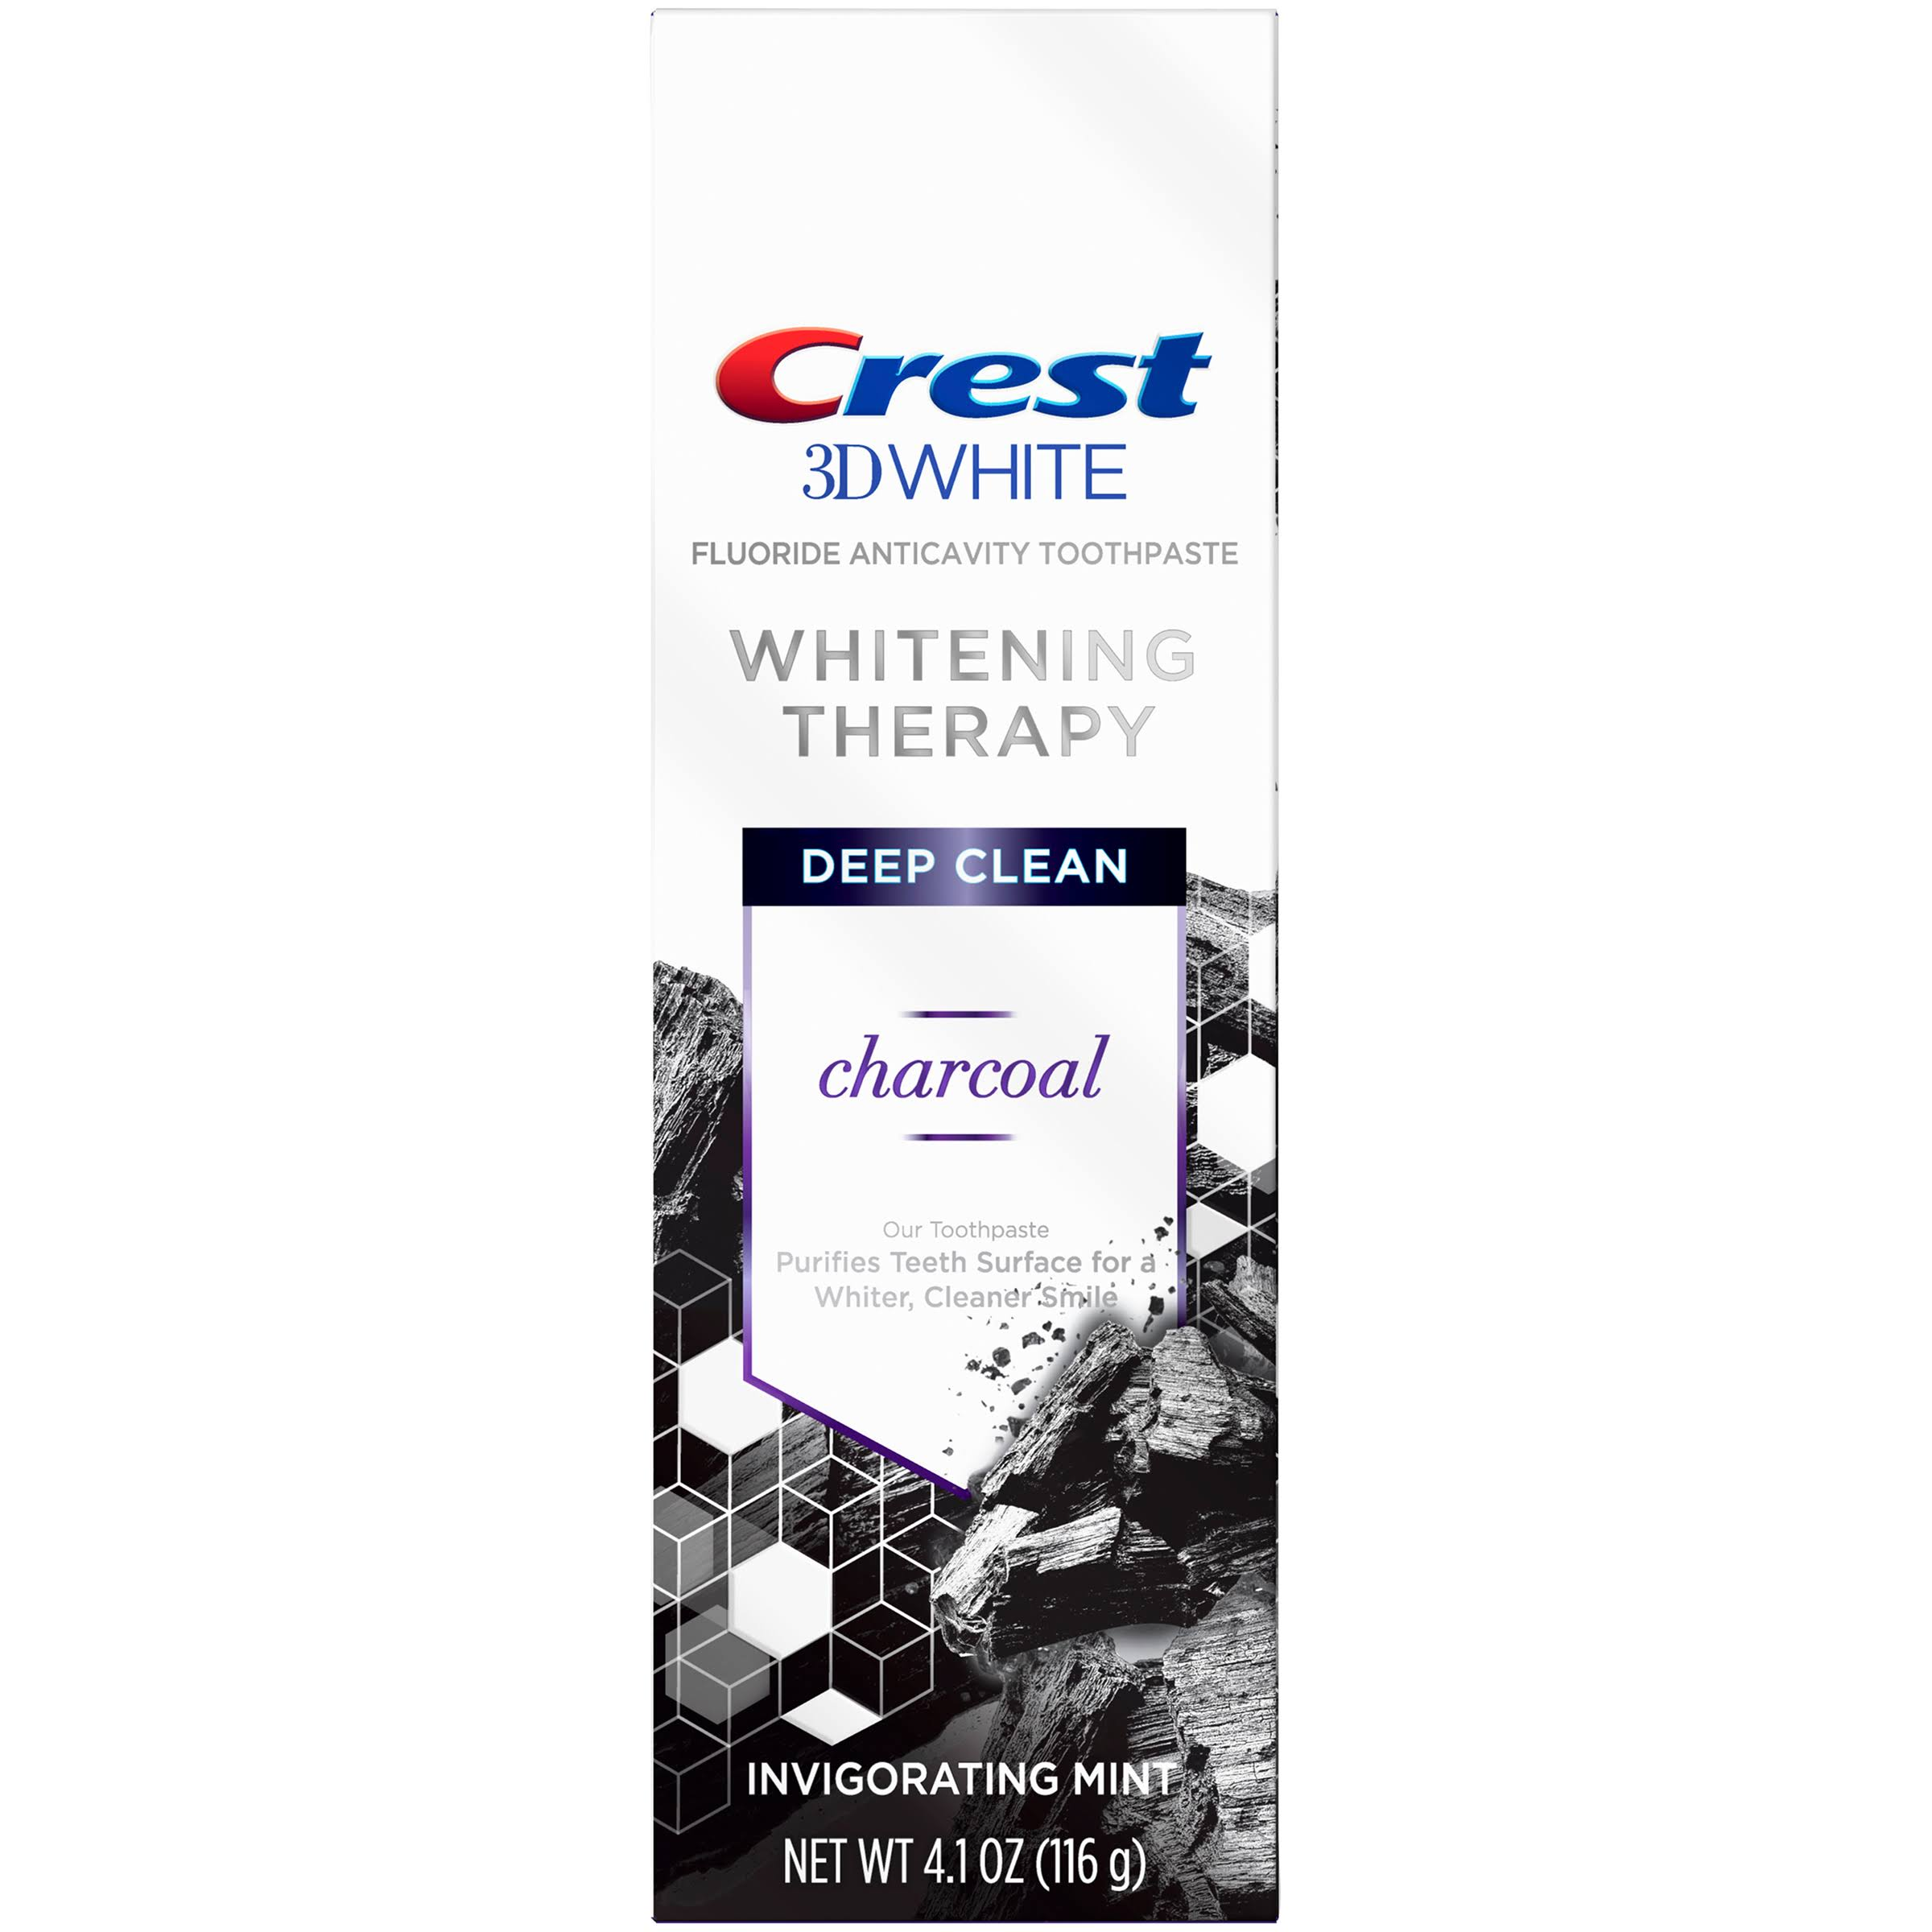 Crest Toothpaste, Charcoal, Deep Clean, 3DWhite - 4.1 oz